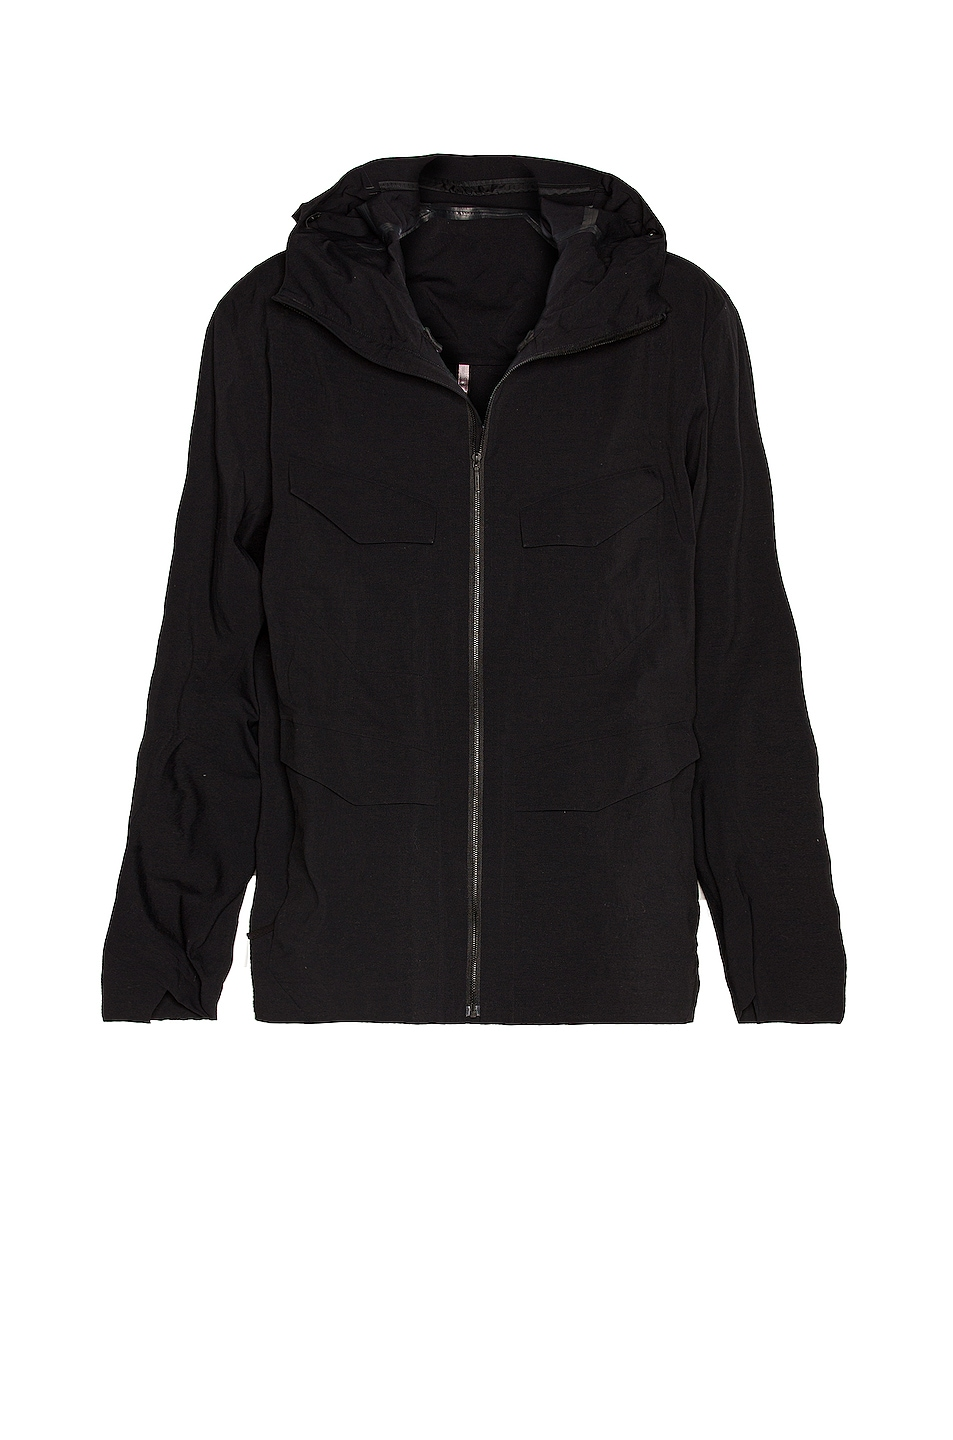 Image 1 of Veilance Spere Hoody in Black